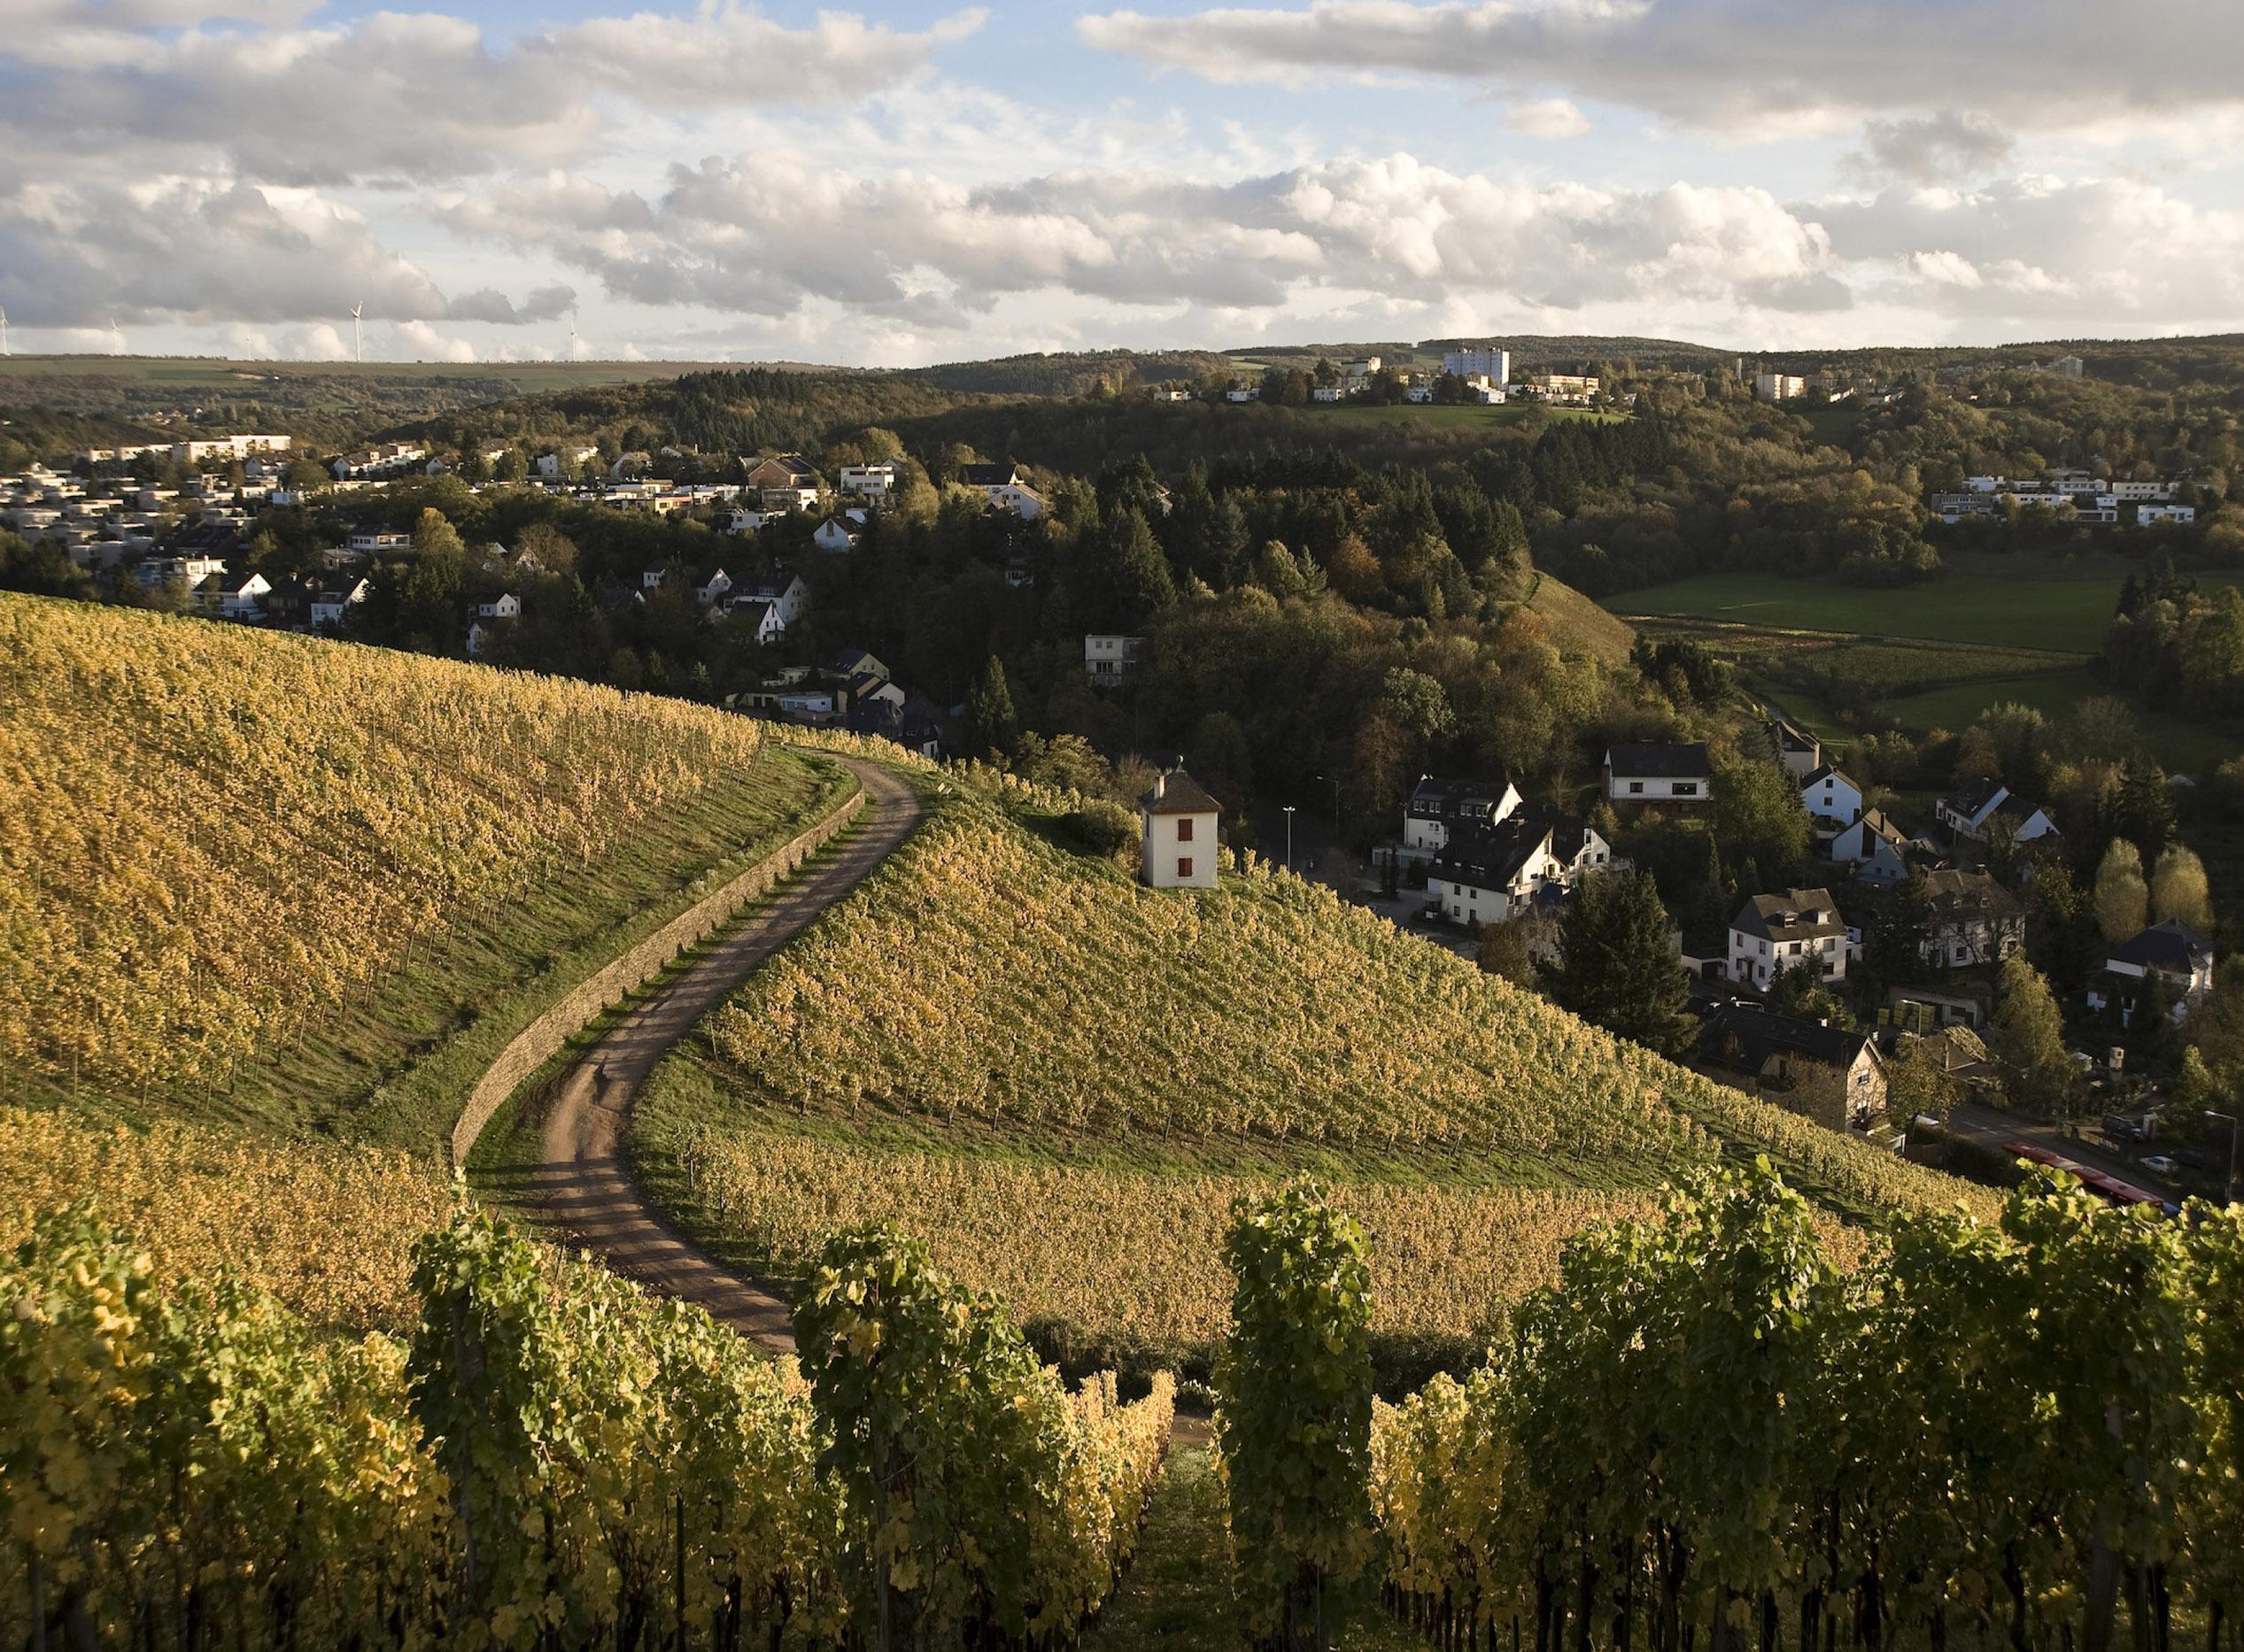 Trier may be loaded with history, but the wine from the Moselle River Valley vineyards transcends every epoch. © Trier Tourismus und Marketing GmbH